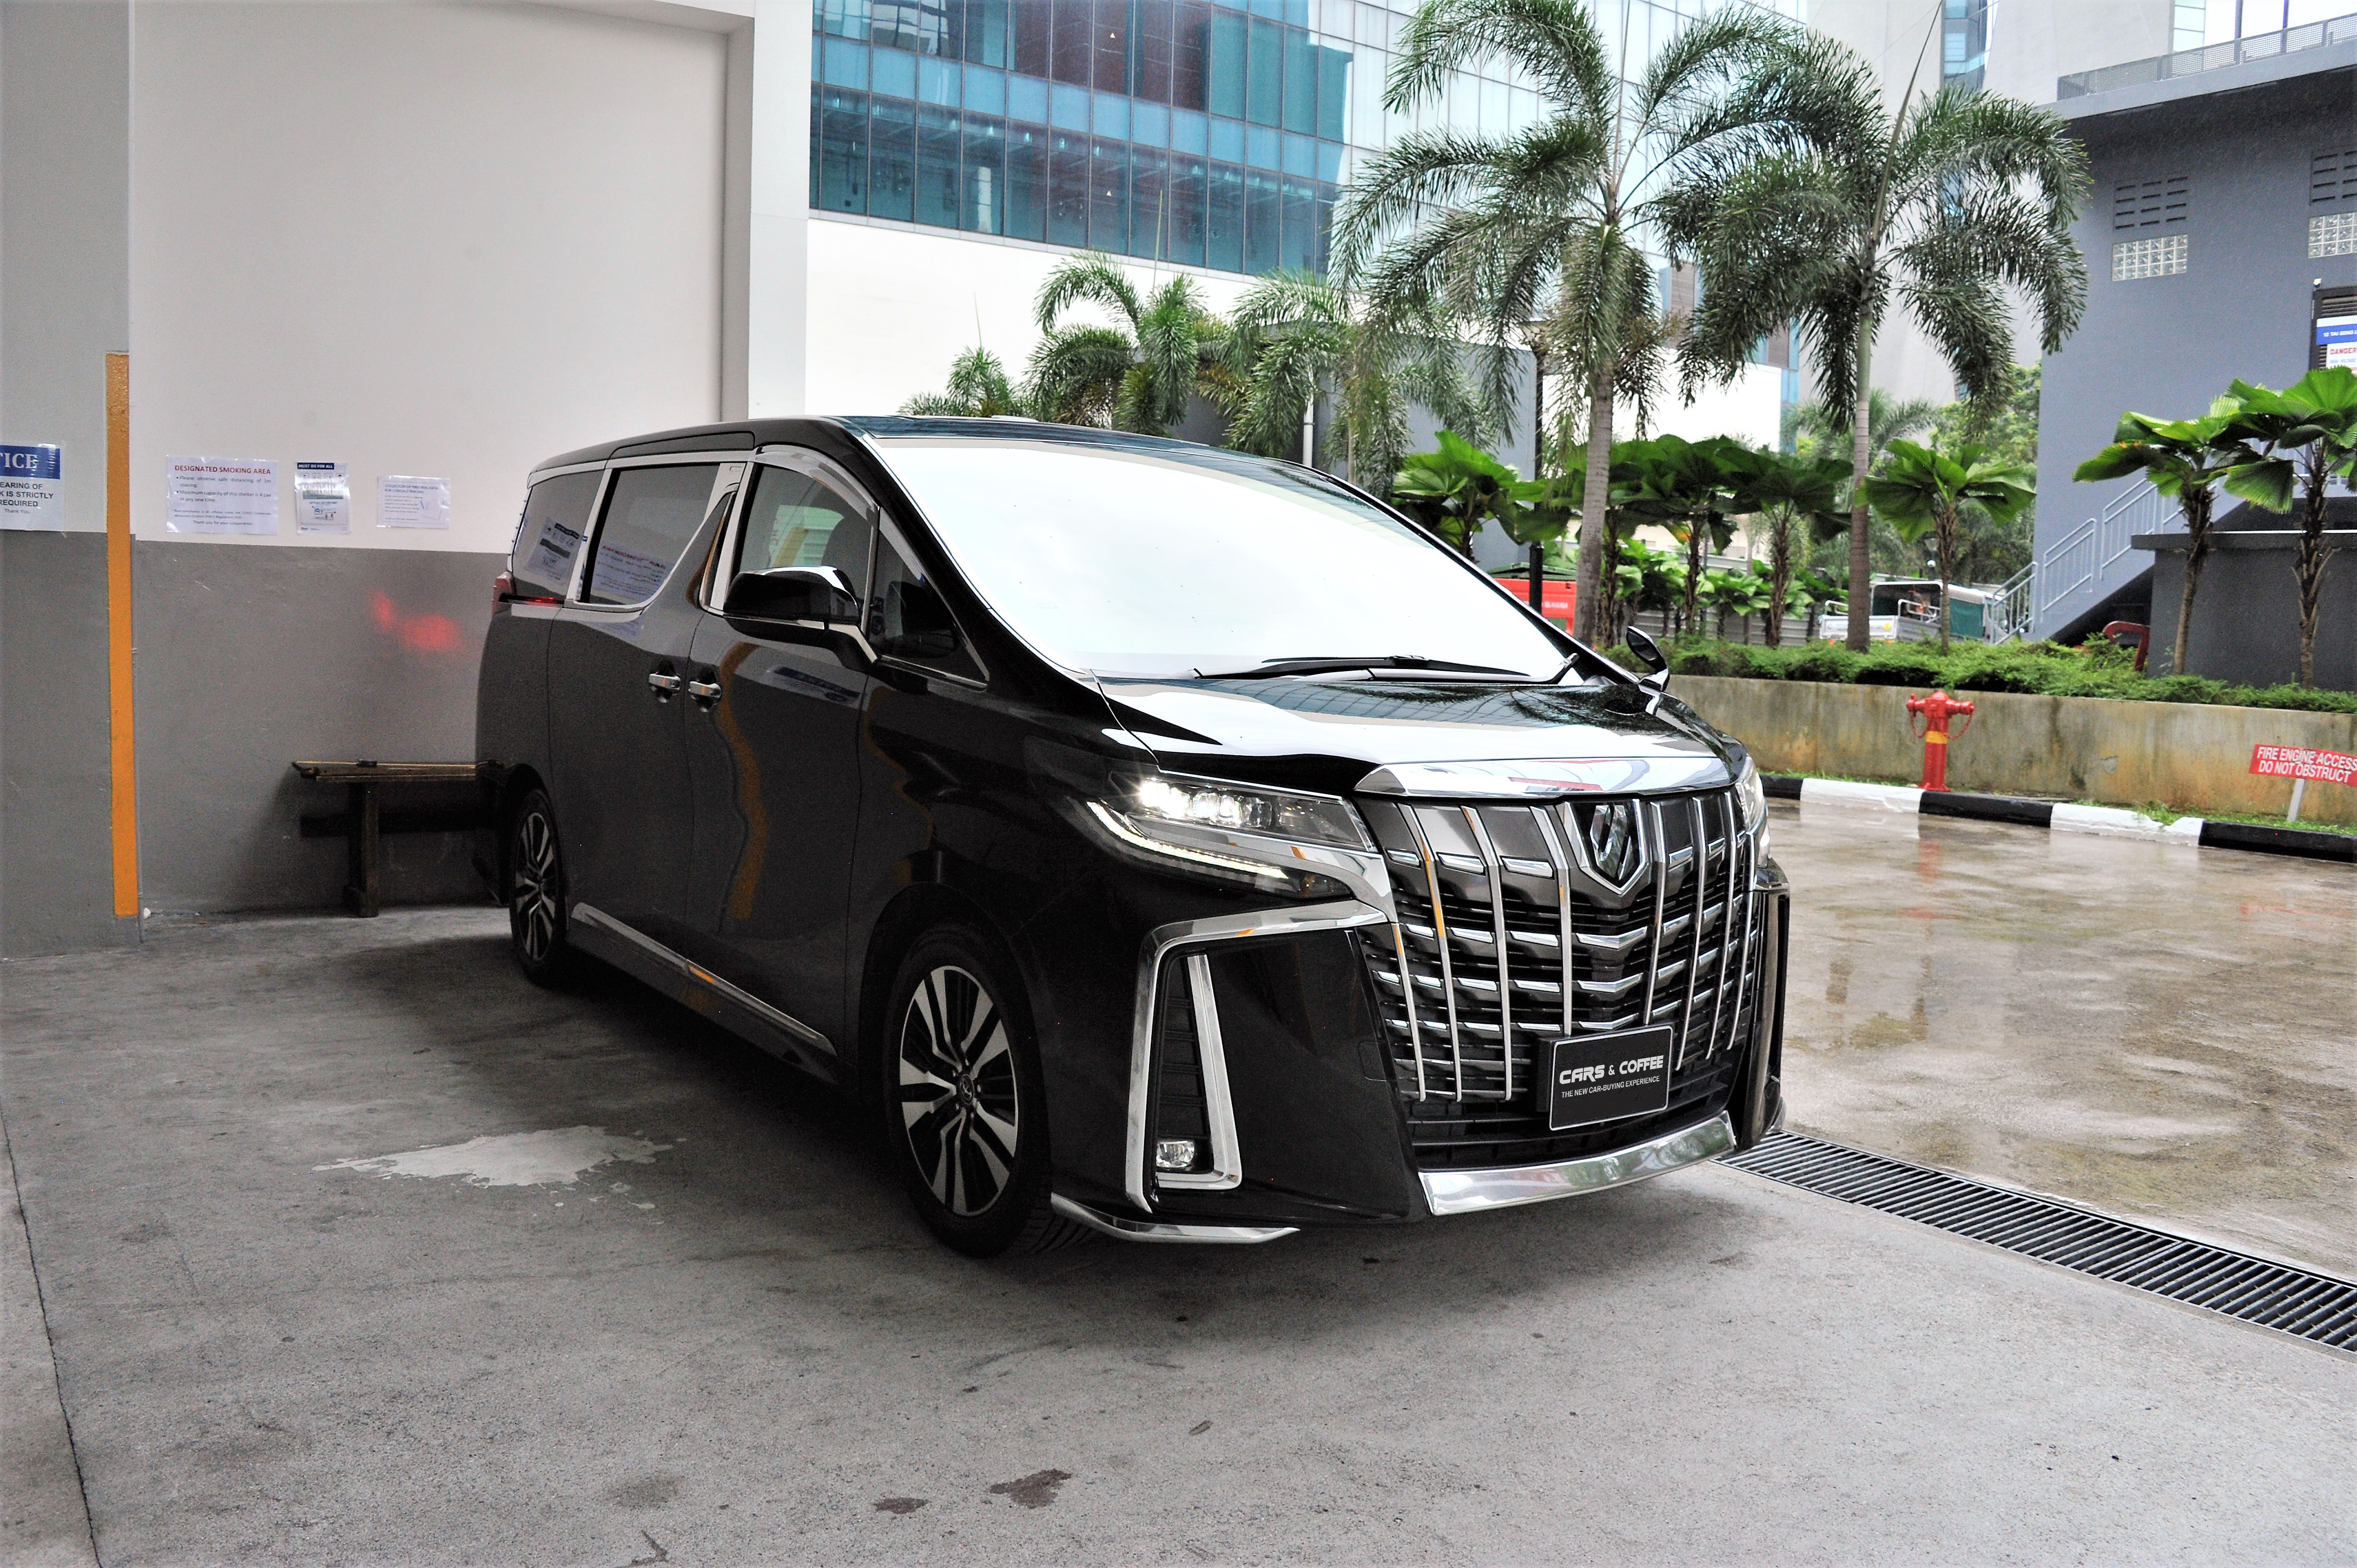 Certified Pre-Owned Toyota Alphard 2.5A SC Moonroof | Cars and Coffee Singapore